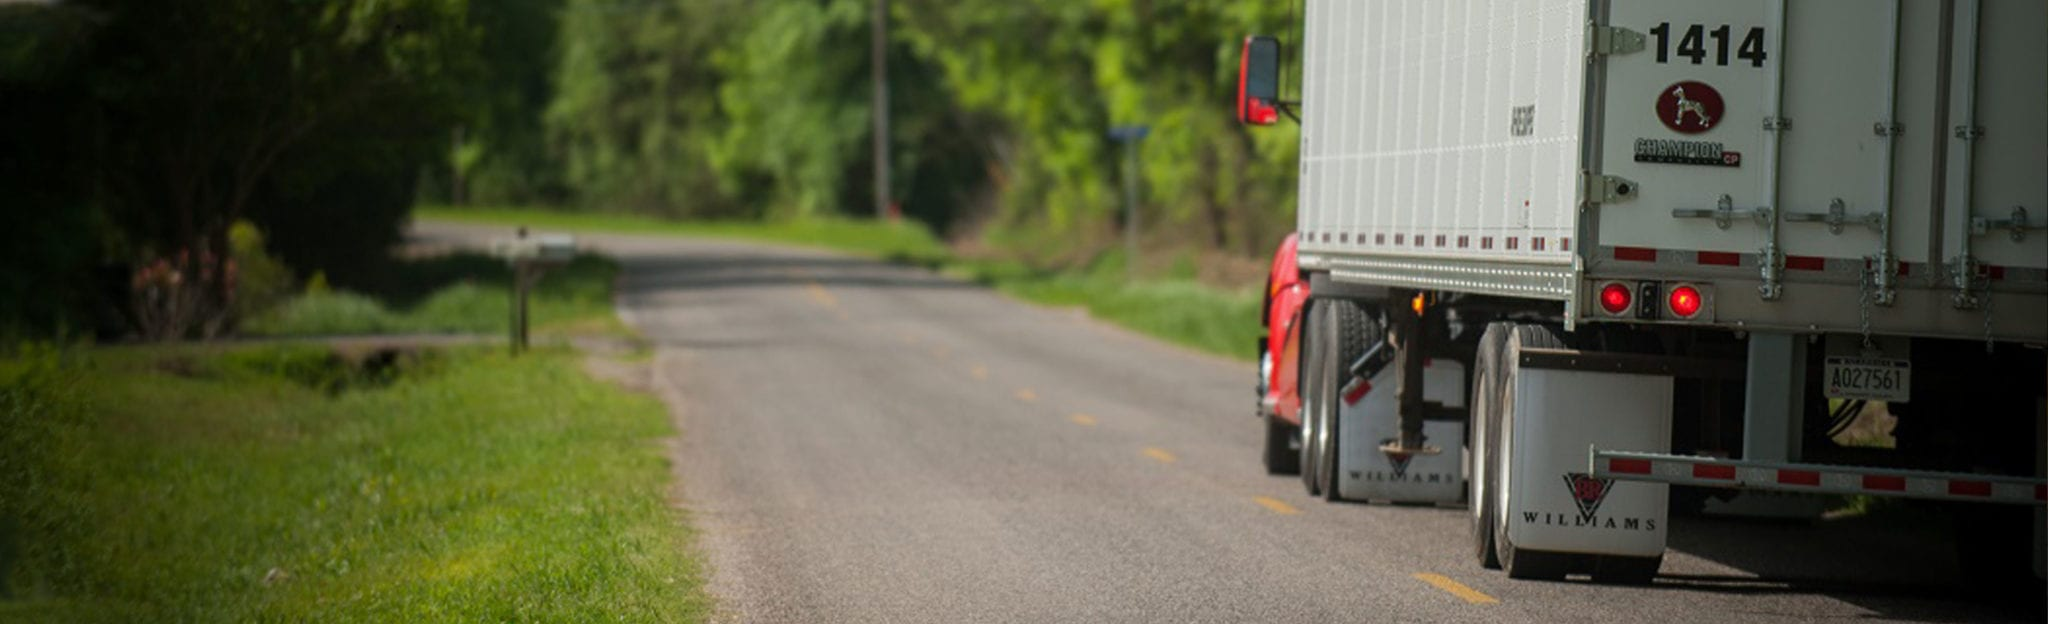 BR Williams Trucking Company - Freight Transportation Services